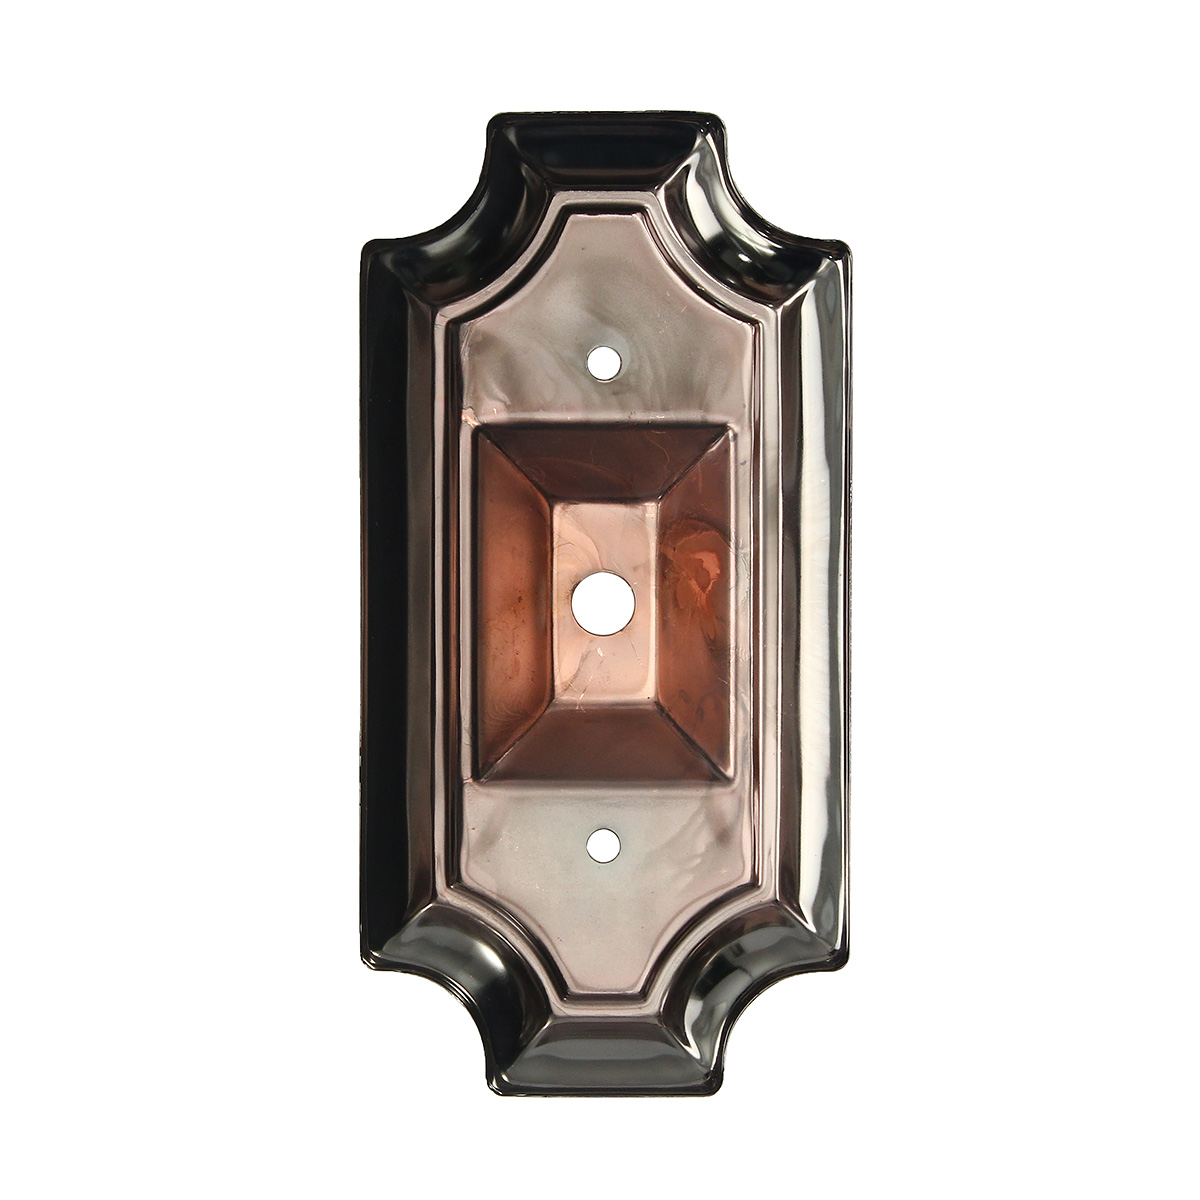 Retro Vintage Rectangle Style Sconce Wall Lamp Light Base ... on Wall Sconce Replacement Parts id=98345